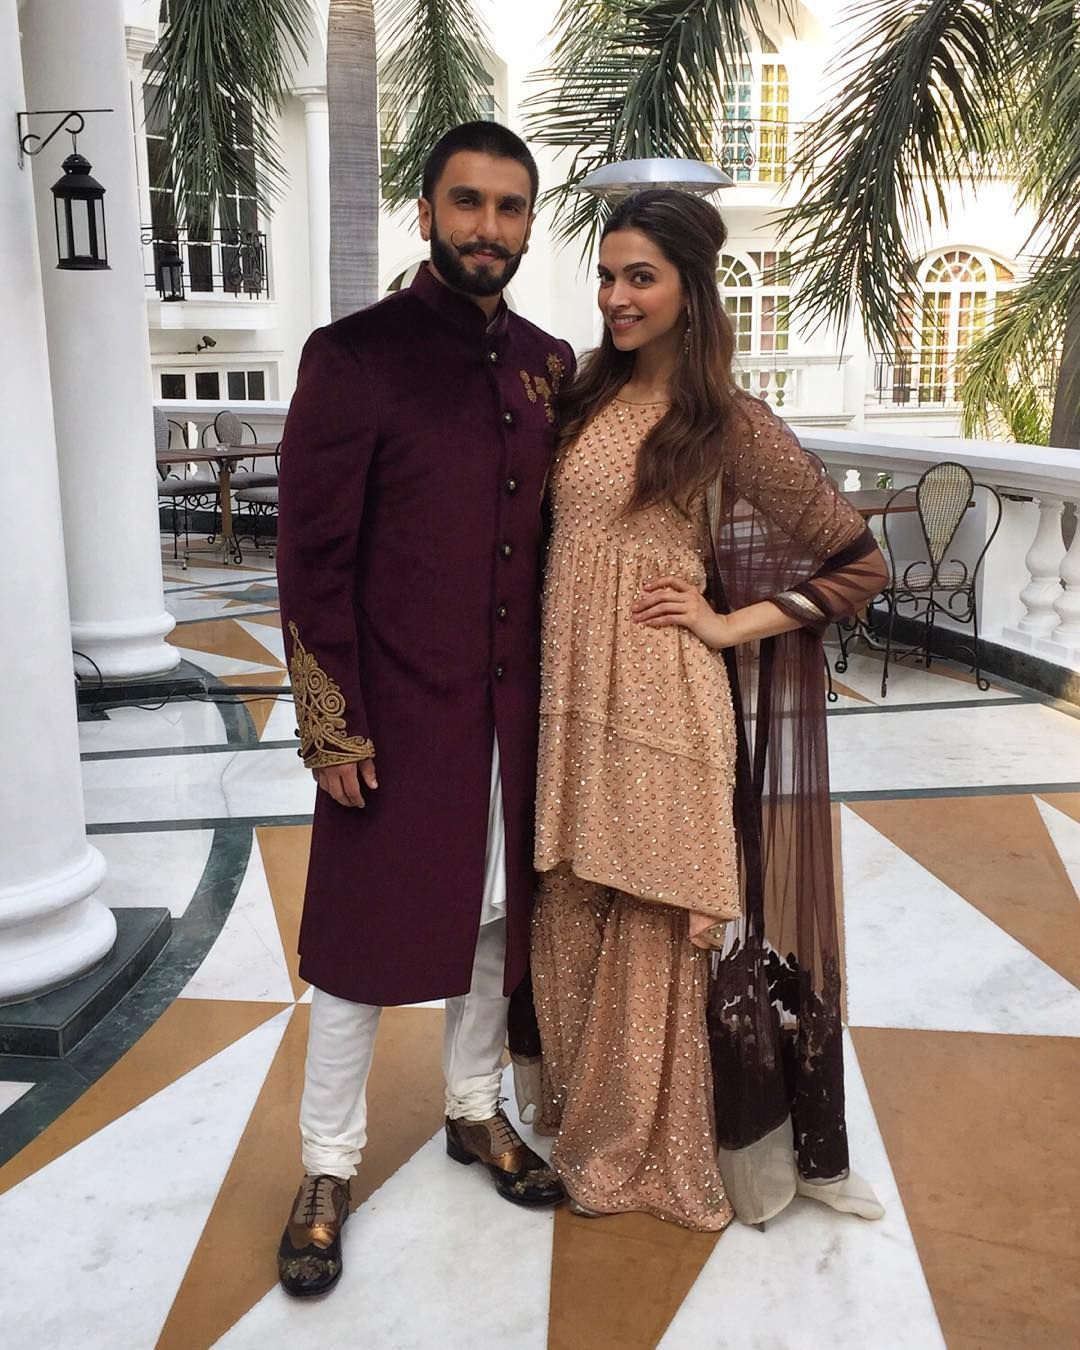 Deepika Padukone On Instagram Photo Of The Day Ranveersingh And Deepikapadukone For Bajiraomastanipromotions In Lucknow Today Witness The Epic Love Story